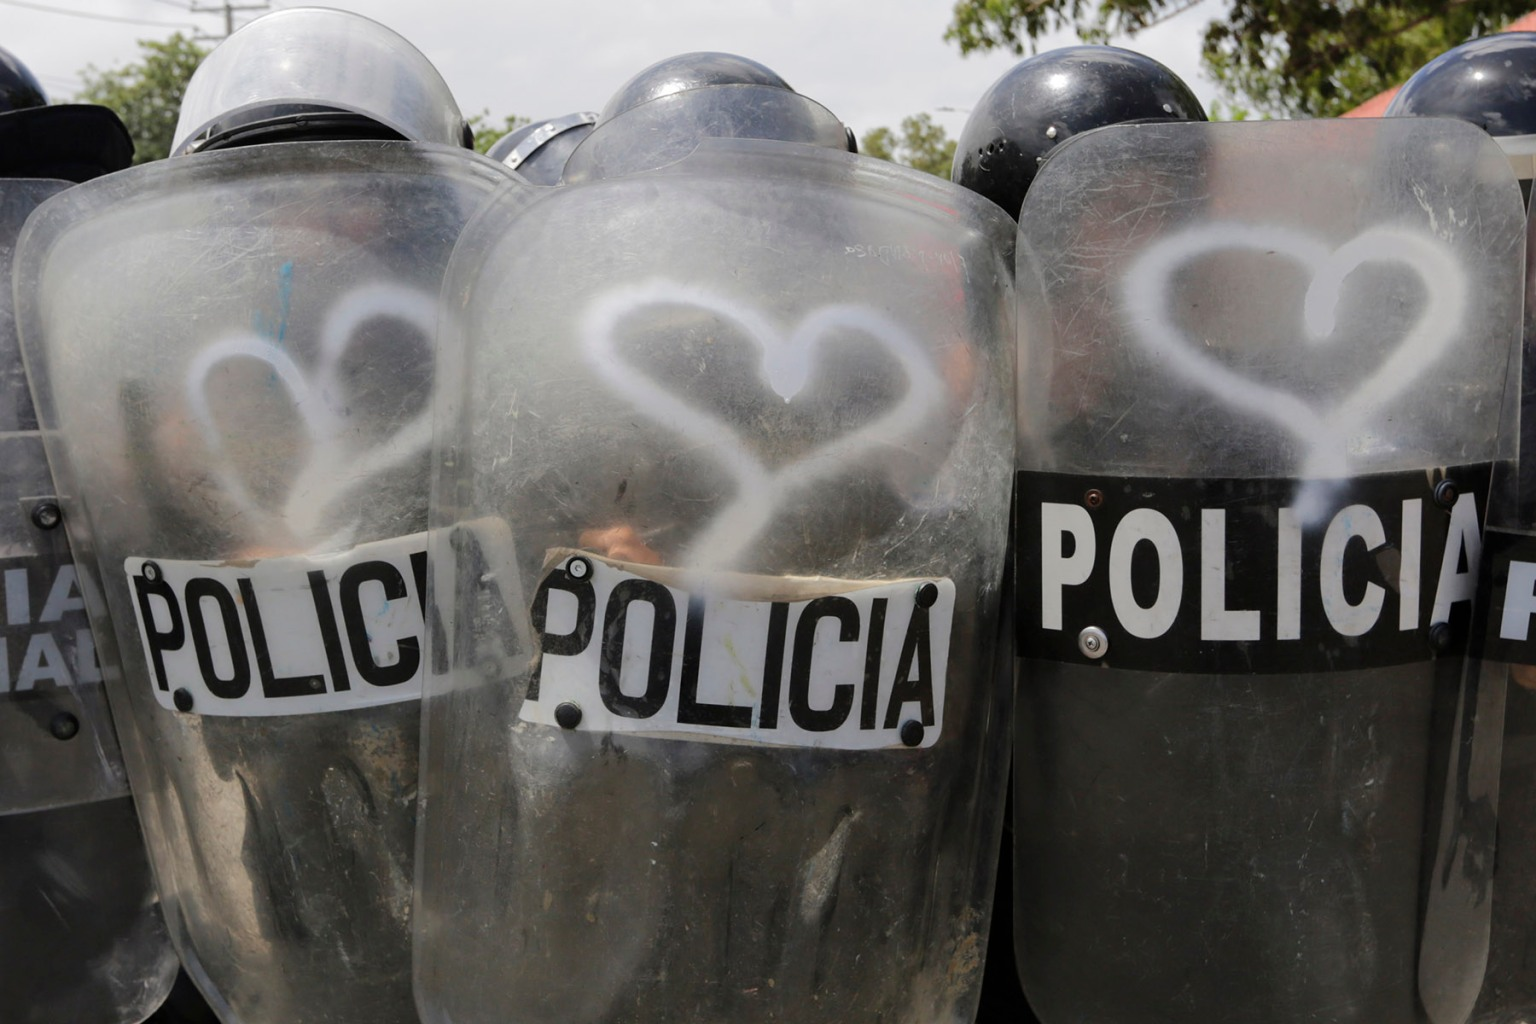 Riot police hold shields with graffiti made by activists during clashes within a protest against Nicaraguan President Daniel Ortega's government in Managua on Sept. 23. INTI OCON/AFP/Getty Images